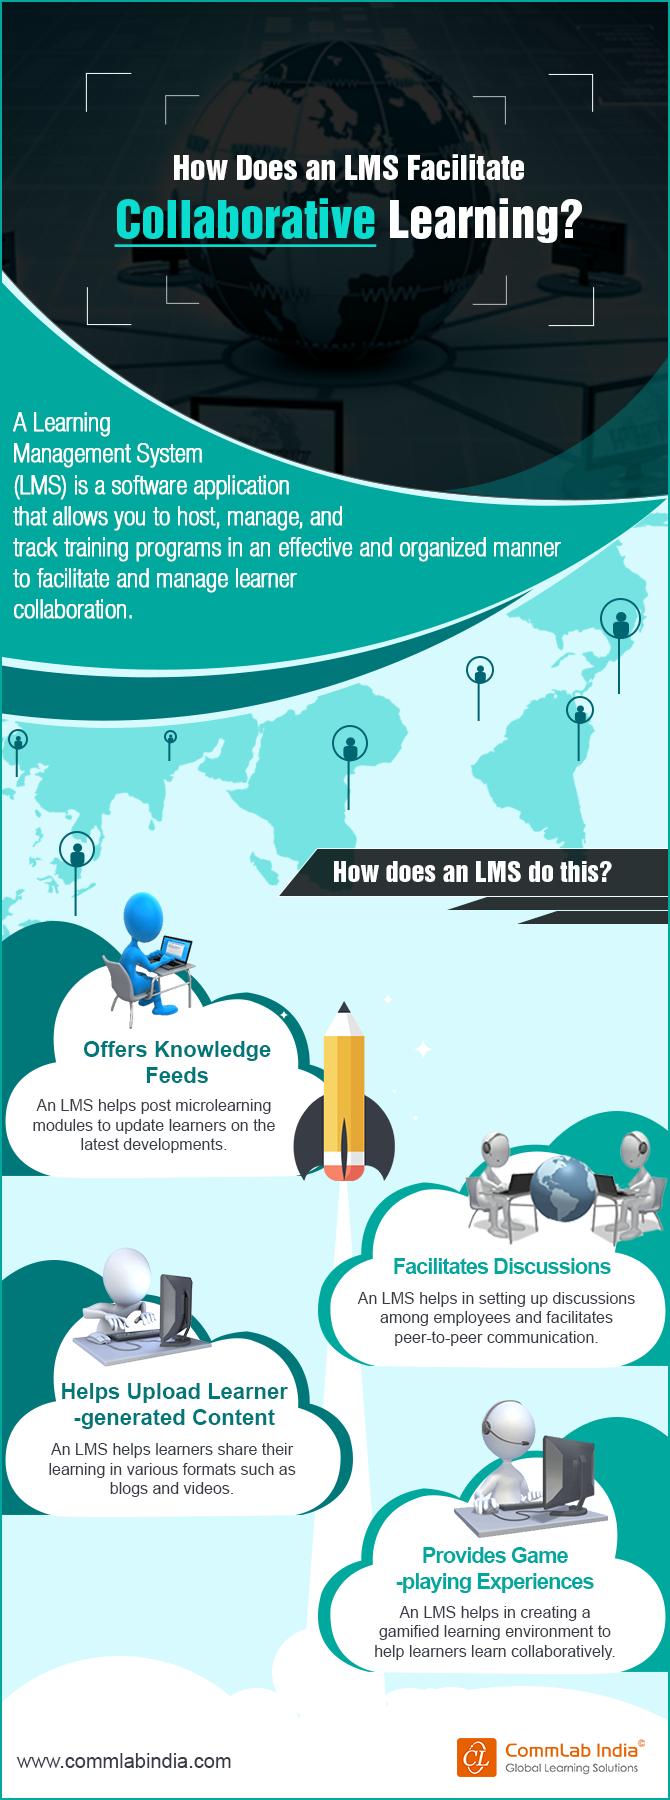 How Does an LMS Facilitate Collaborative Learning? [Infographic]